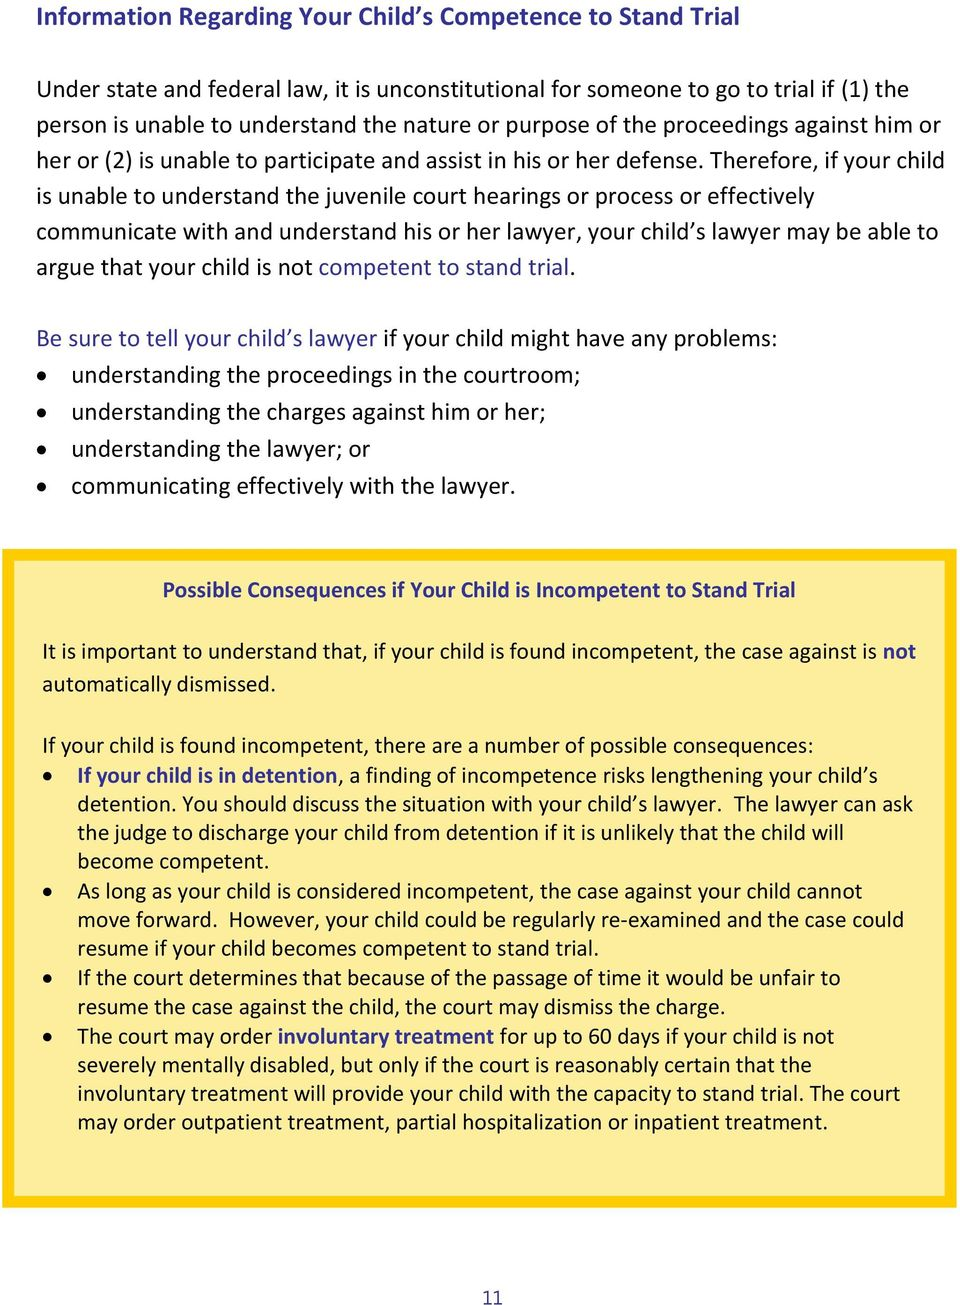 Therefore, if your child is unable to understand the juvenile court hearings or process or effectively communicate with and understand his or her lawyer, your child s lawyer may be able to argue that